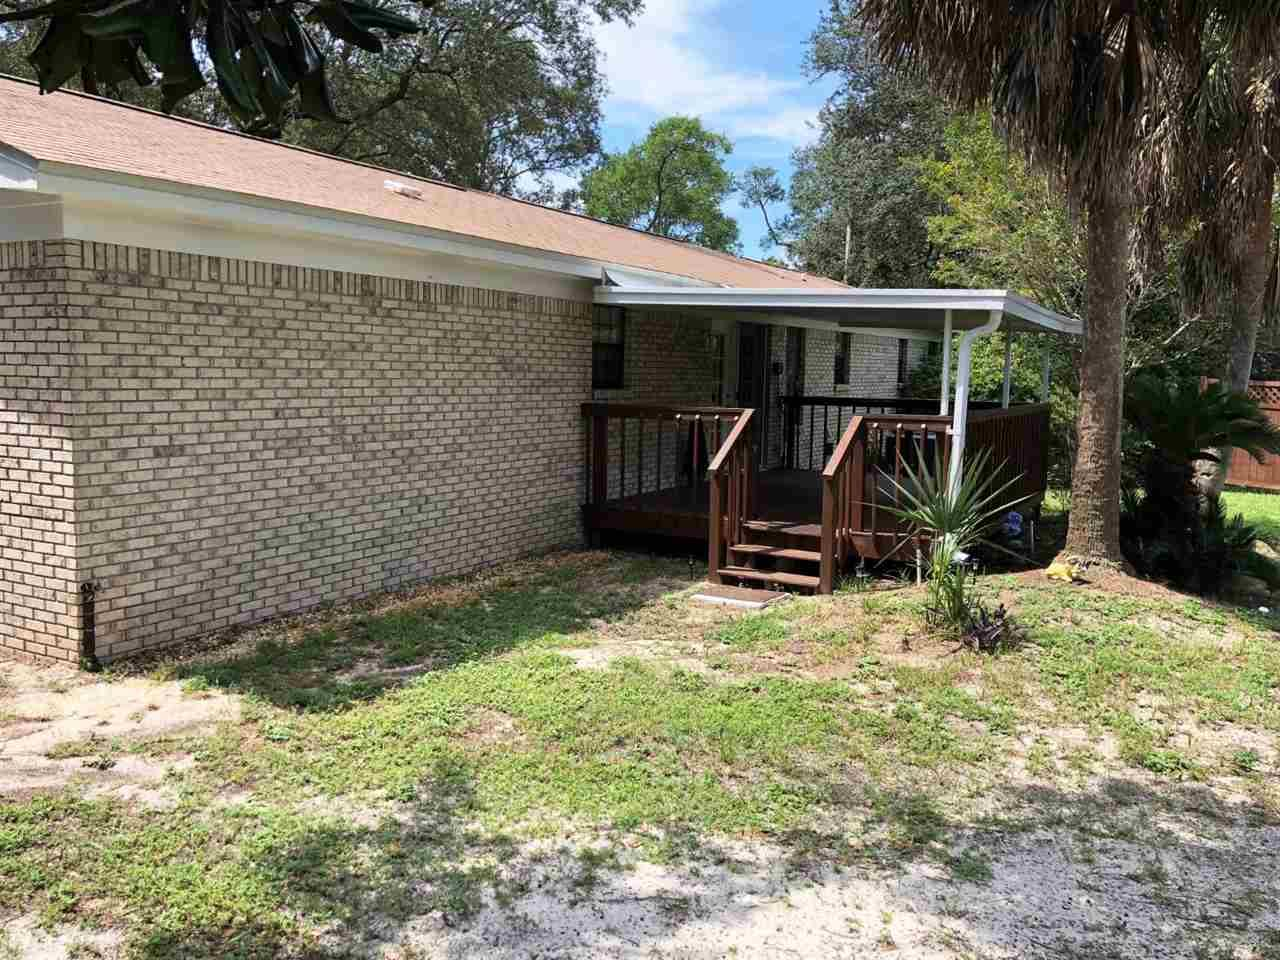 4788 Gulf Breeze Pkwy, Gulf Breeze, FL 32563